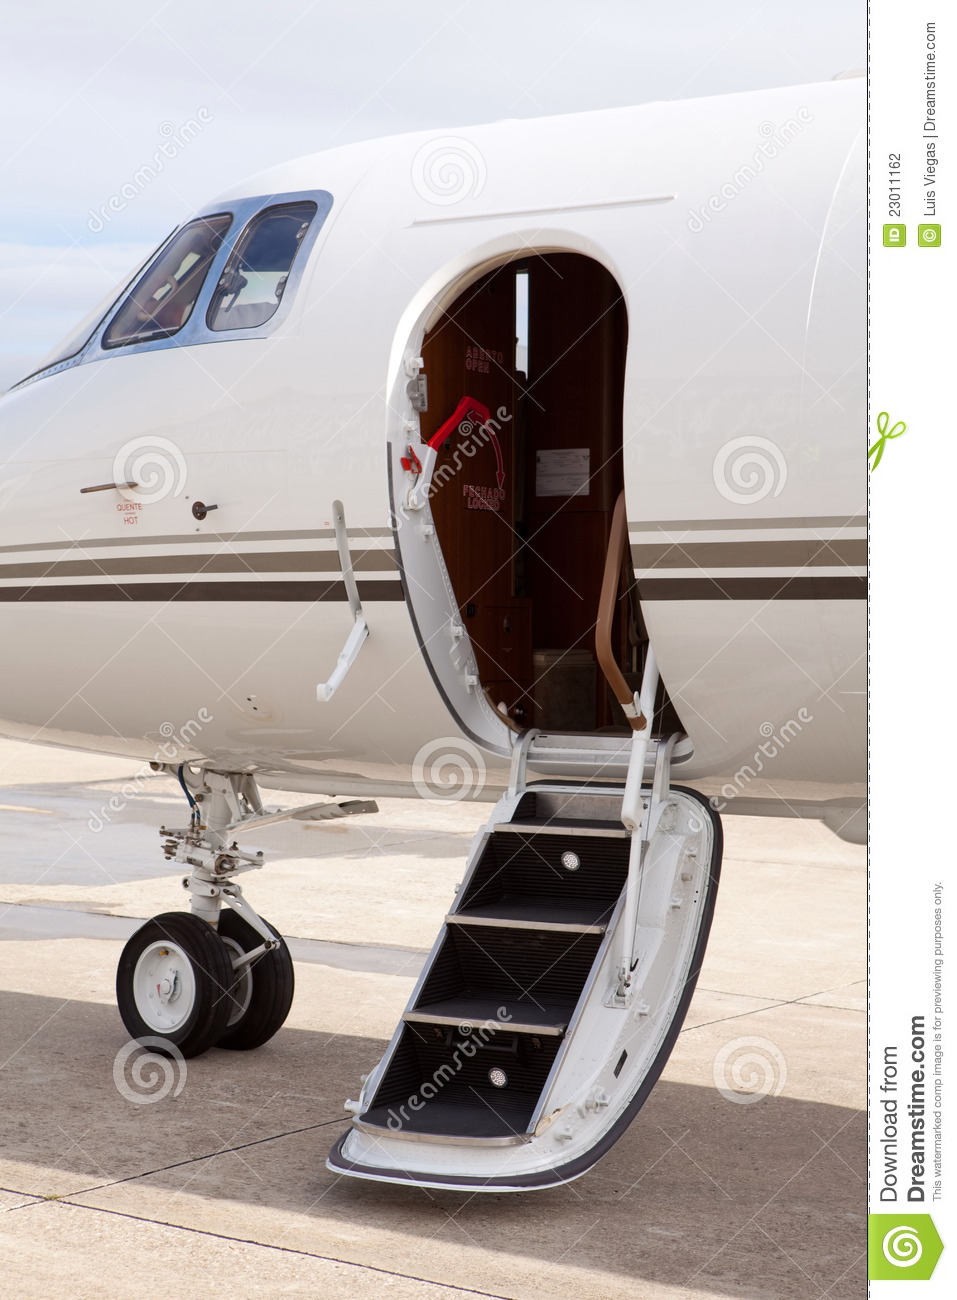 airplane door ... & Airplane Door Stock Photography - Image: 23011162 Pezcame.Com